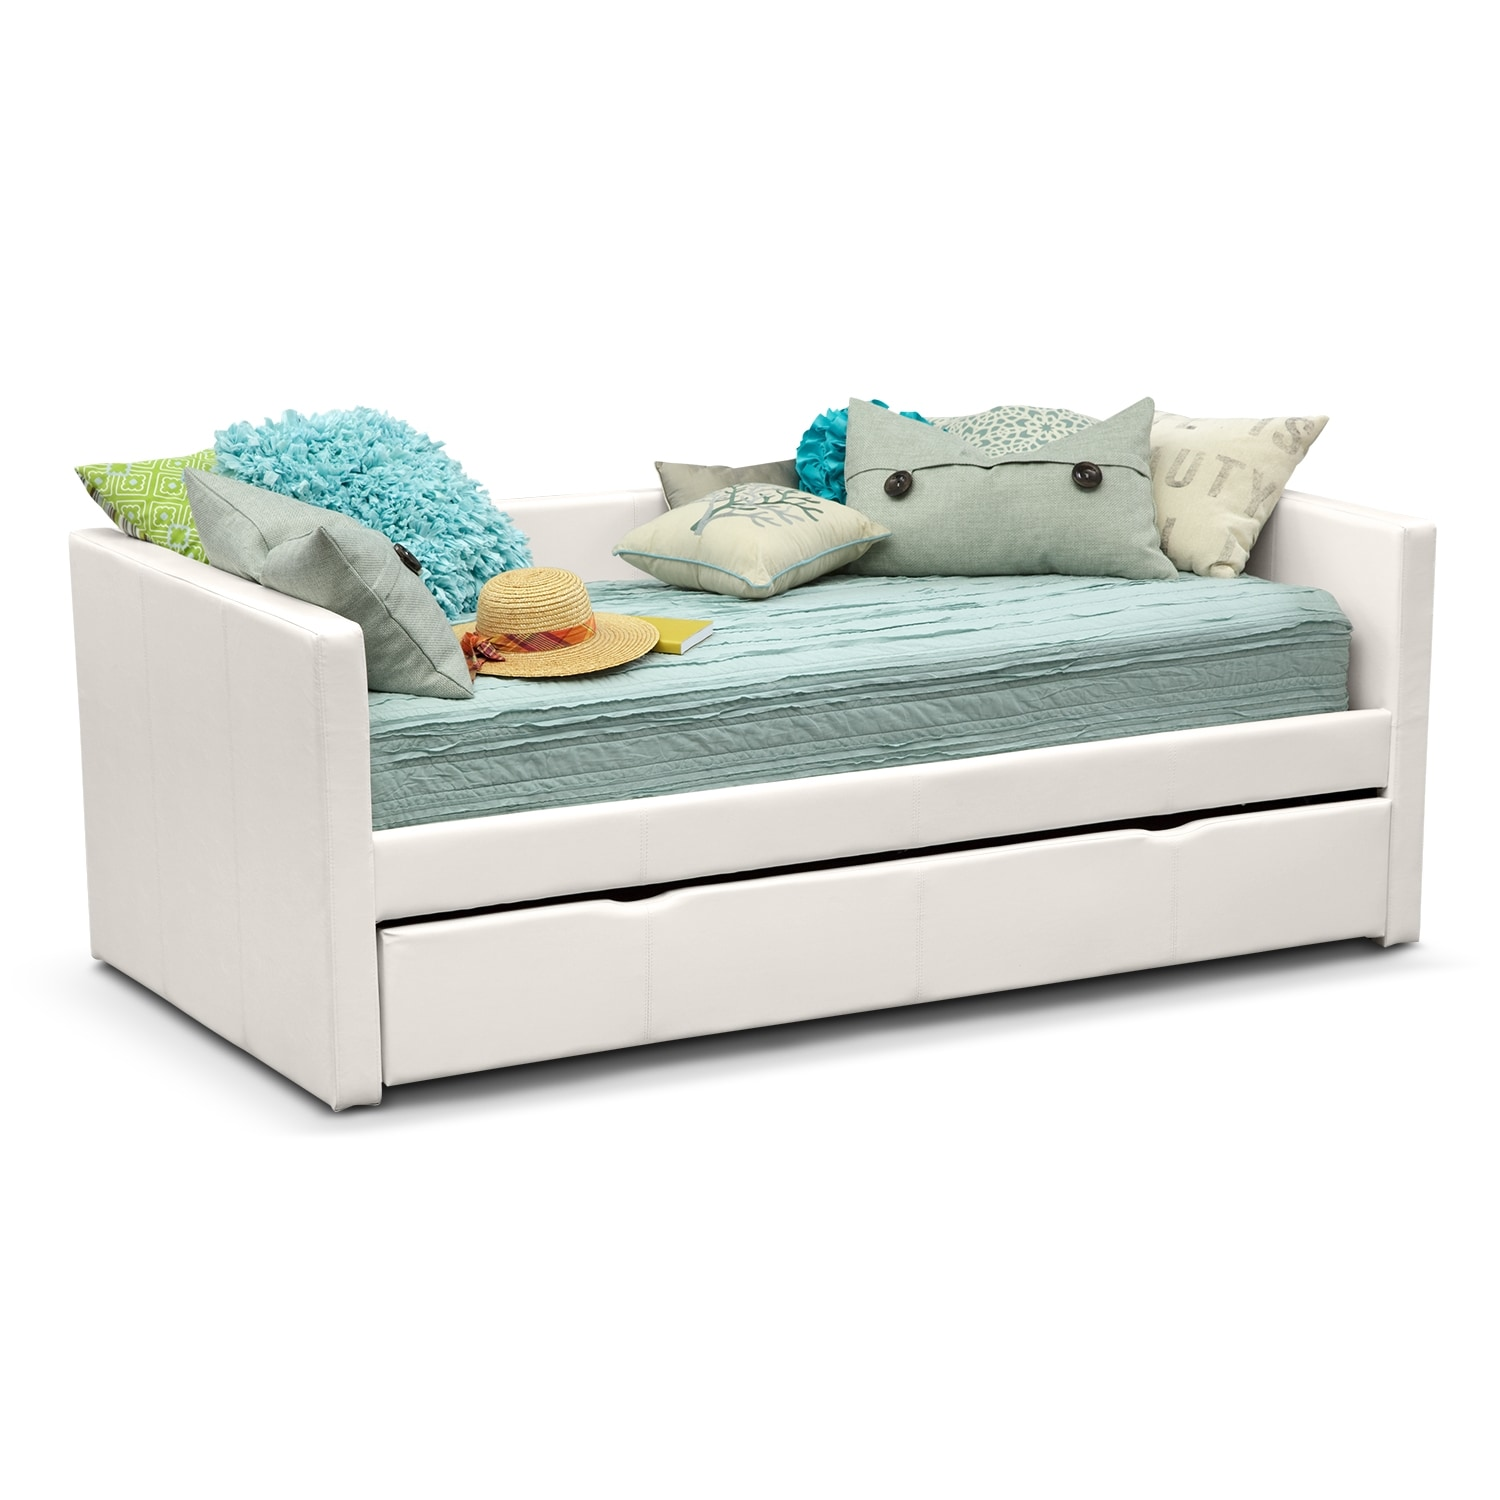 Carey White Twin Daybed with Trundle